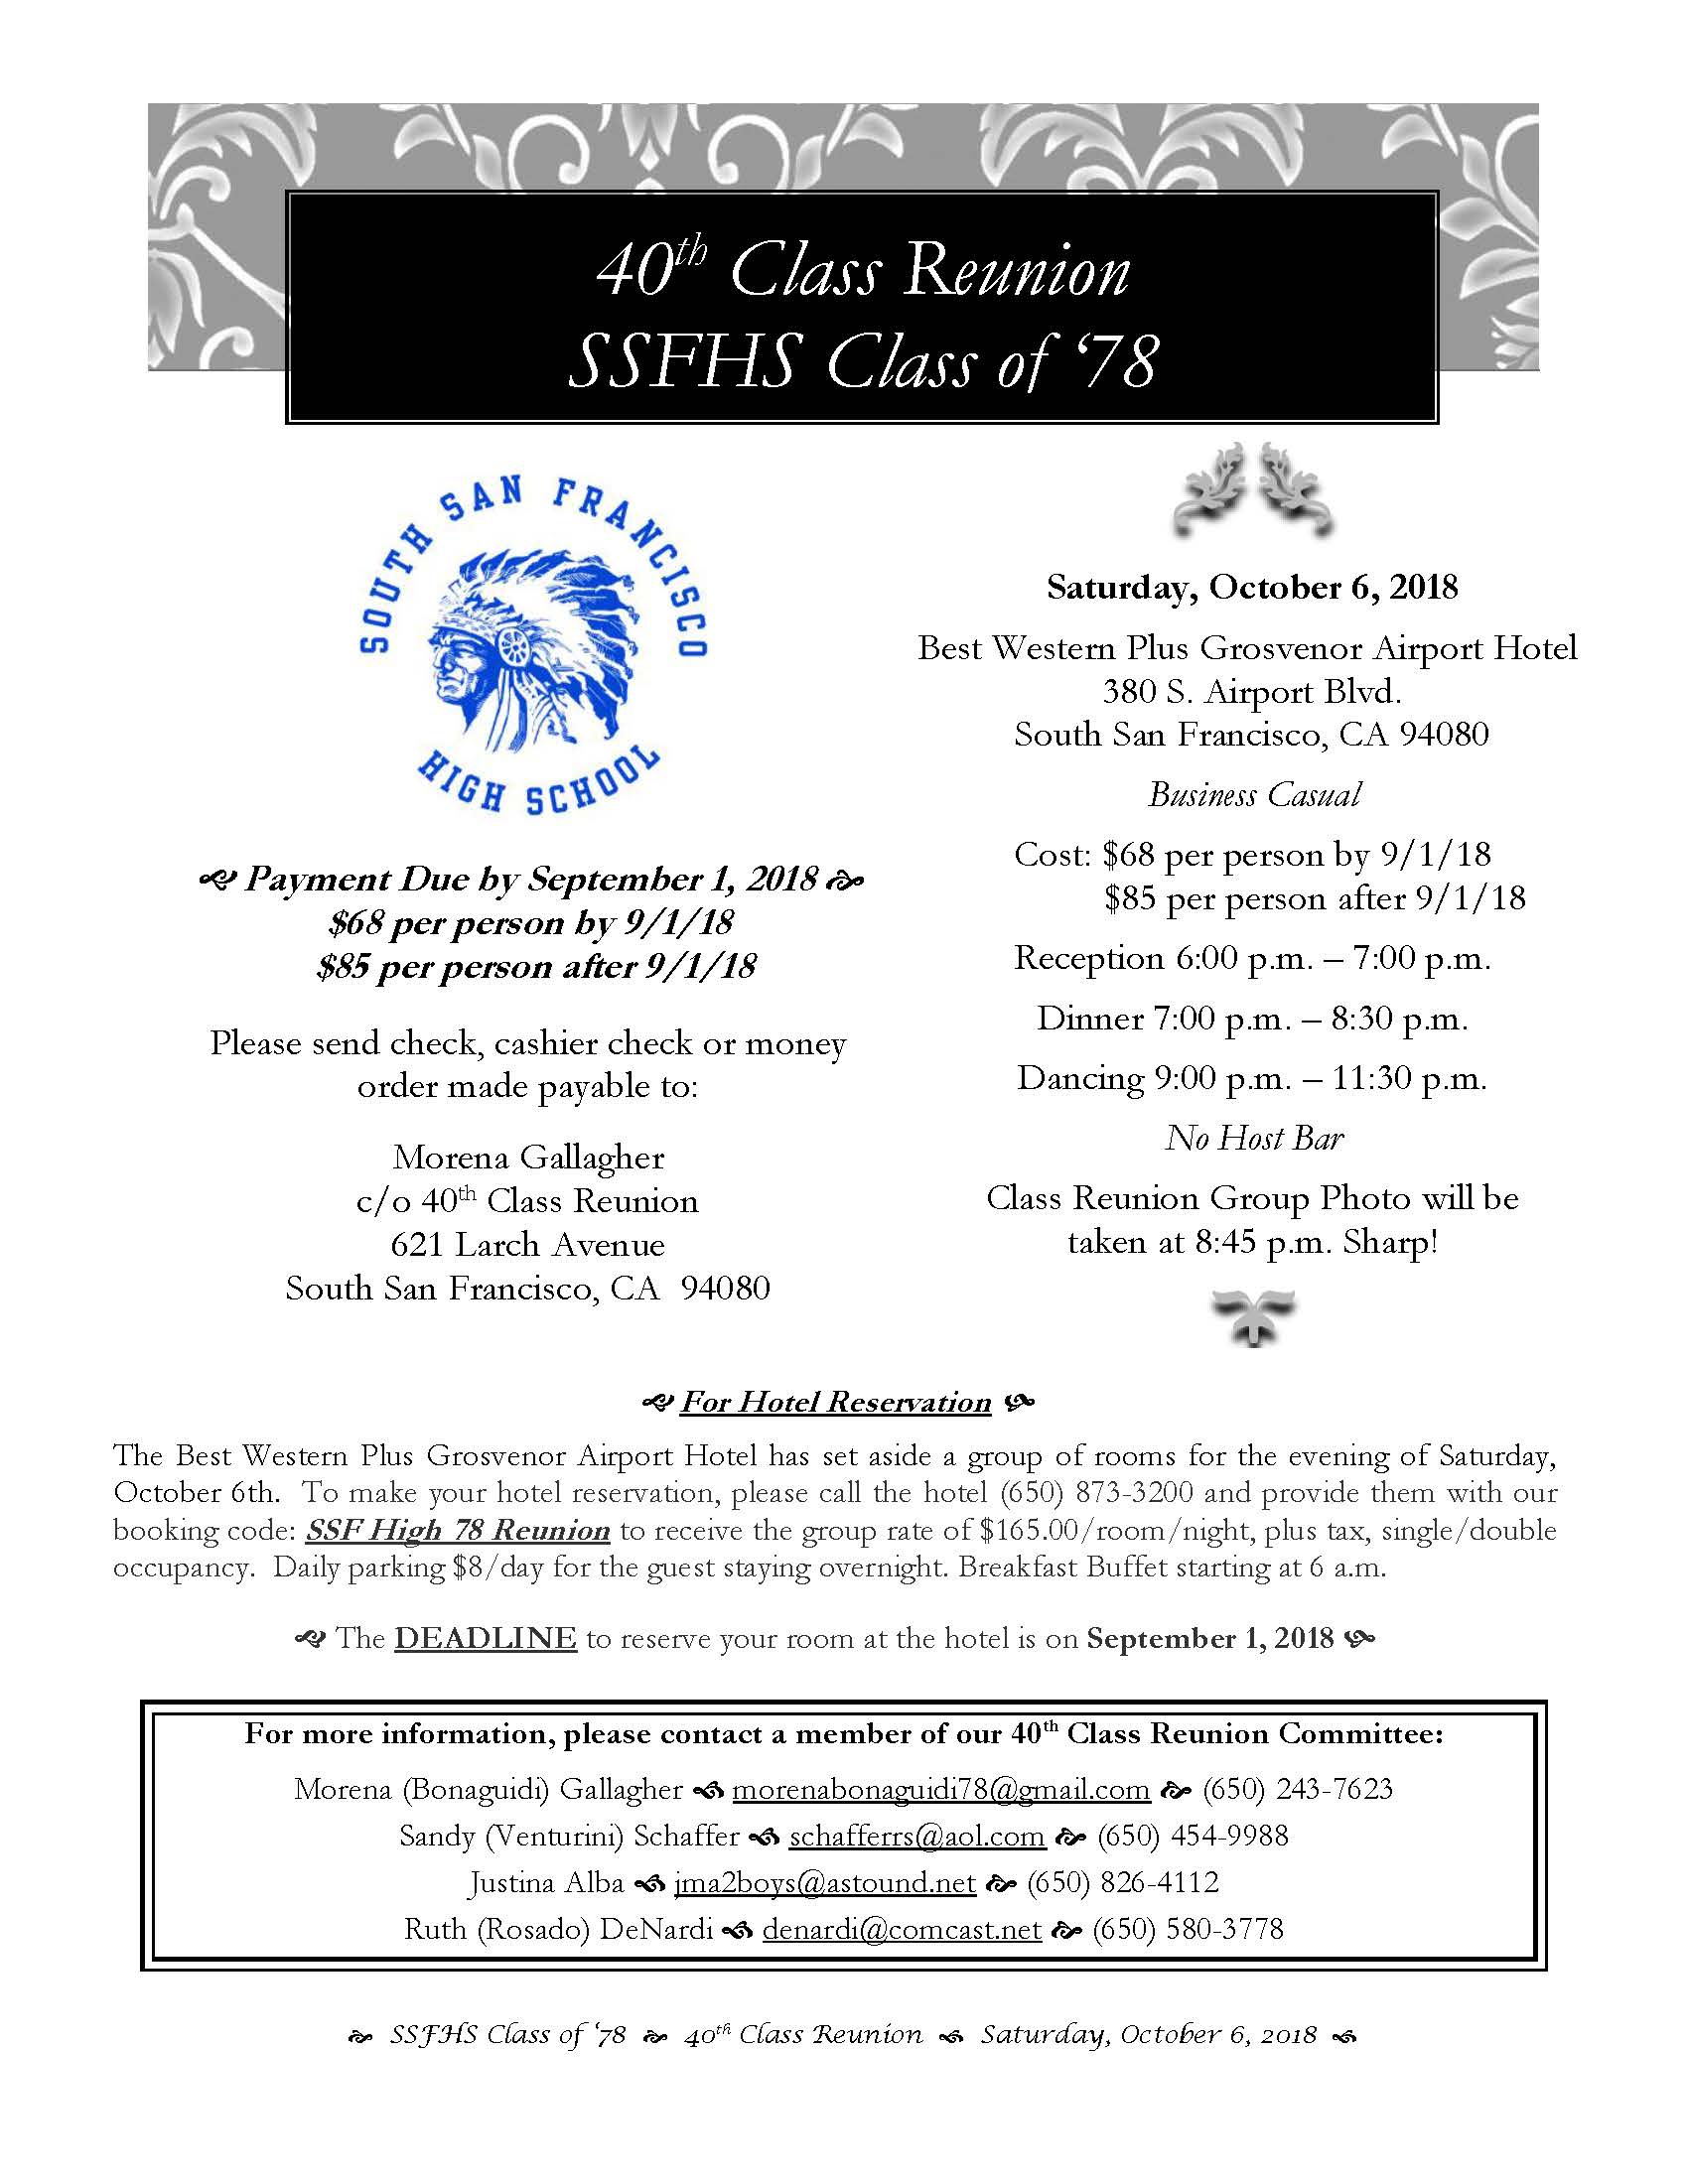 Revised Update Ssfhs 40th Class Reunion Set For October 6th At Best